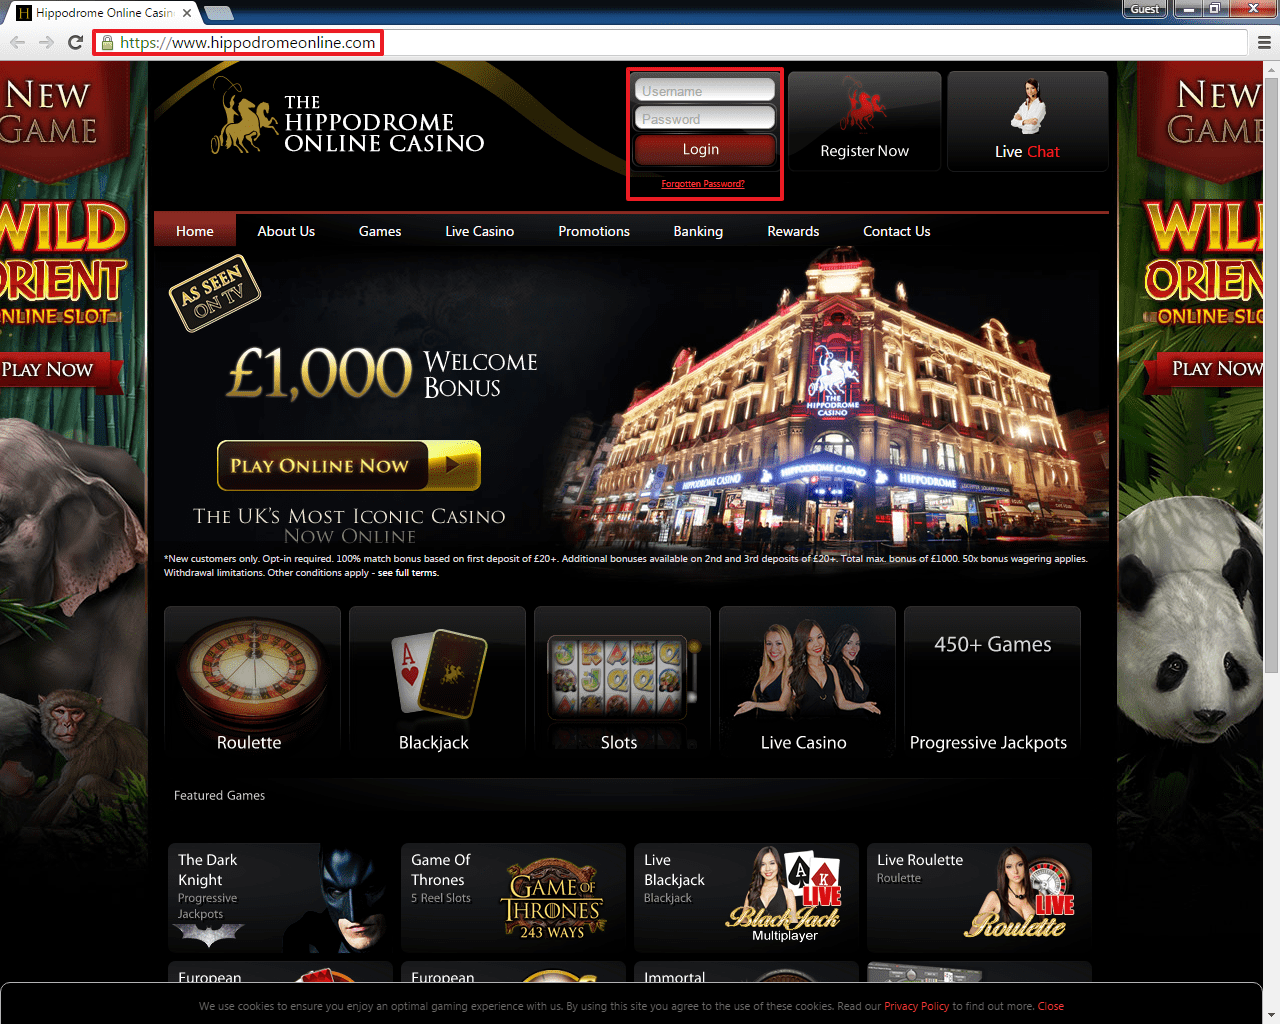 Hippodrome casino login 2